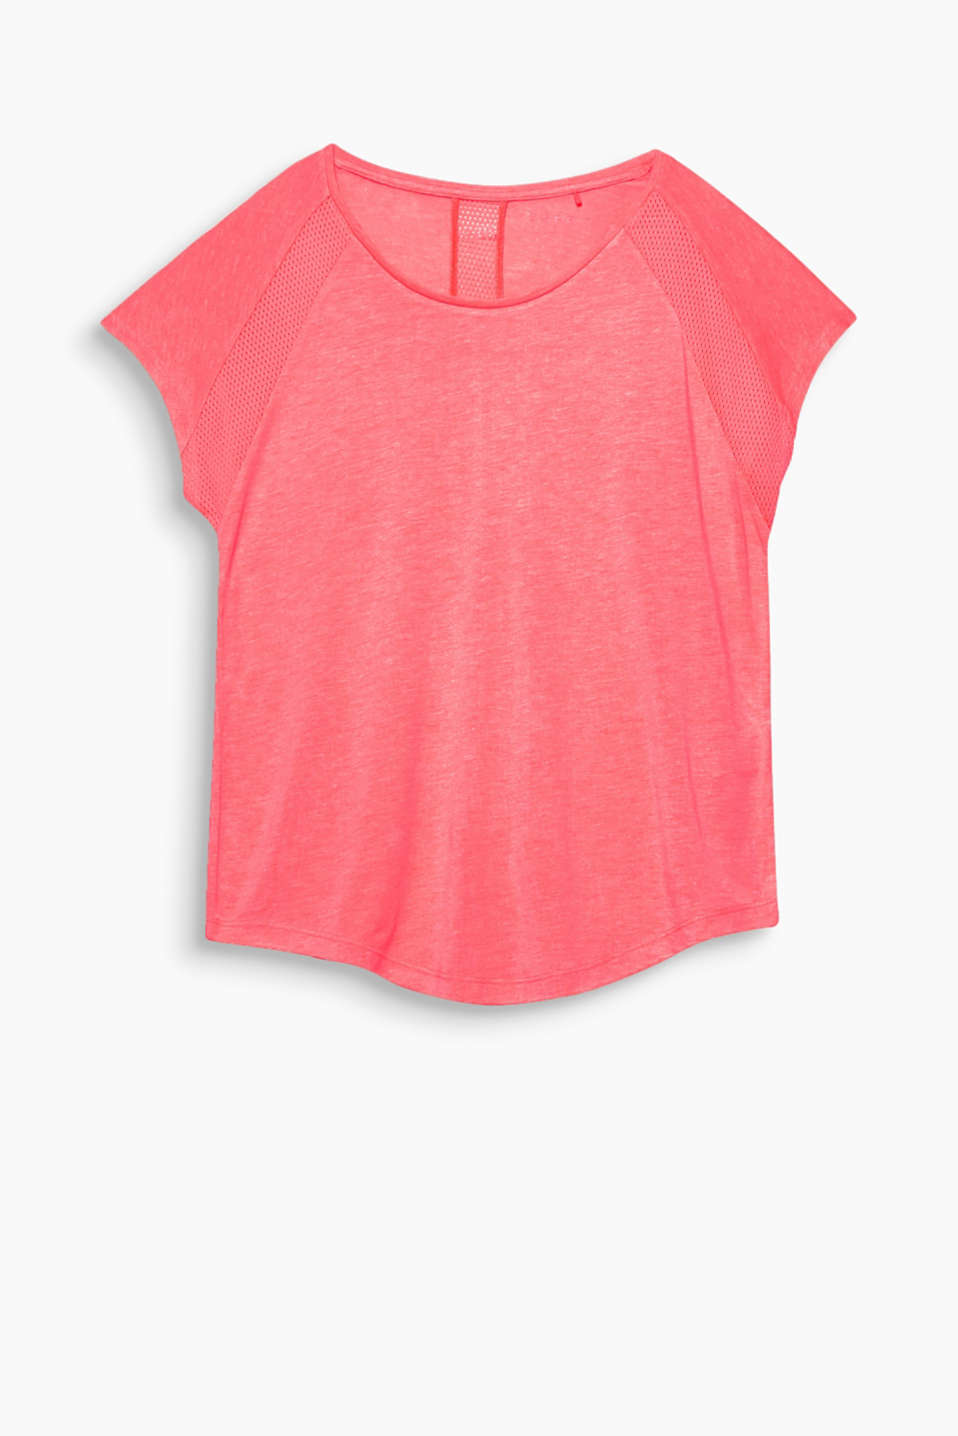 An airy look: this flowing top is perfect for sporty activities thanks to its perforated mesh panels!